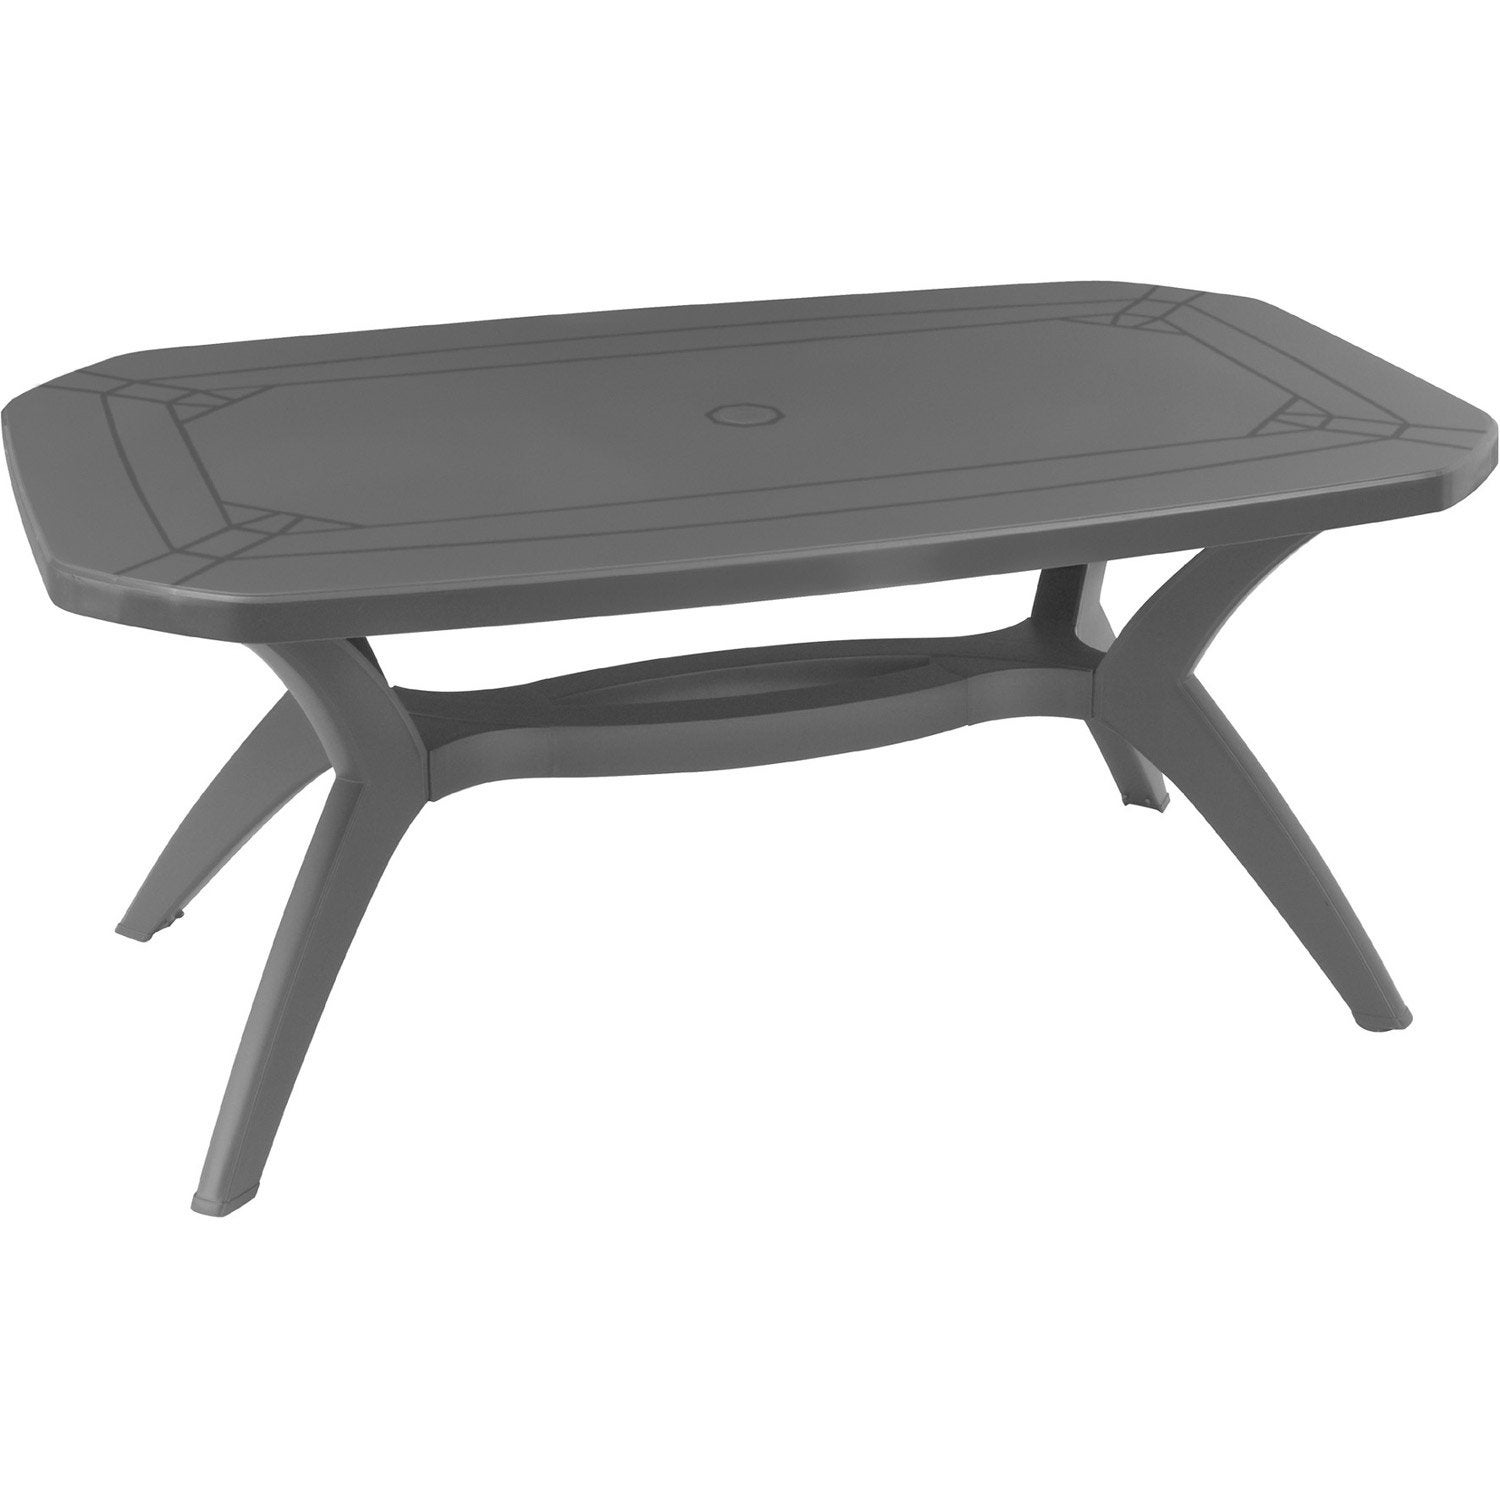 Table de jardin rectangulaire ibiza grosfillex leroy merlin - Table jardin grofilex besancon ...